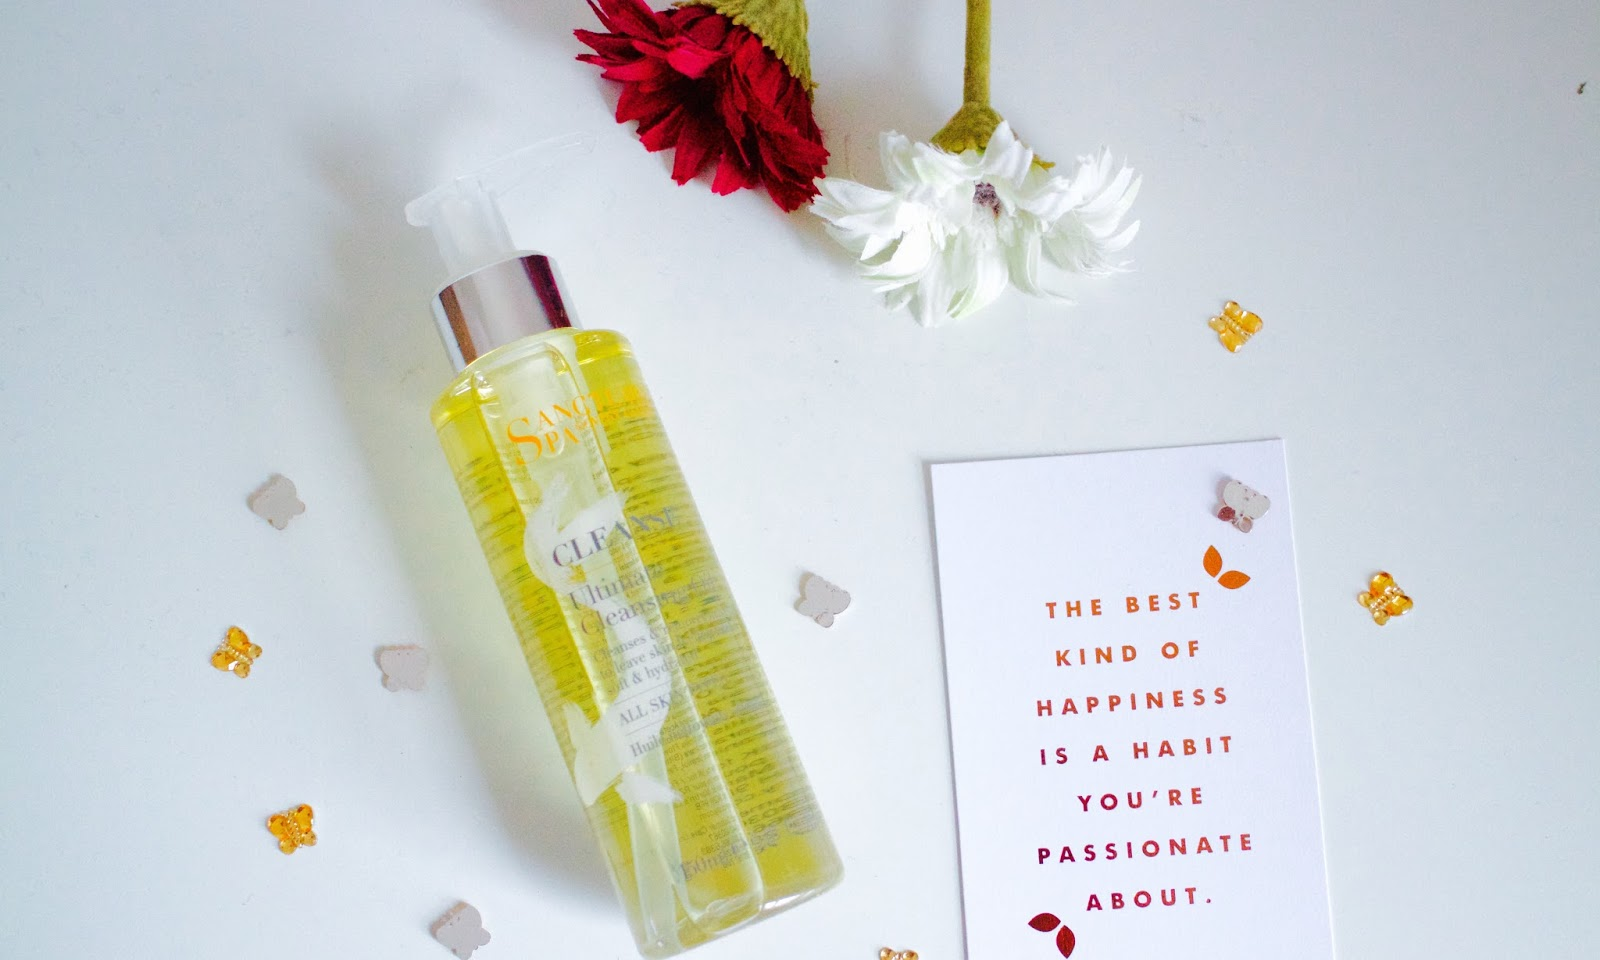 Sanctuary Spa Cleansing Oil